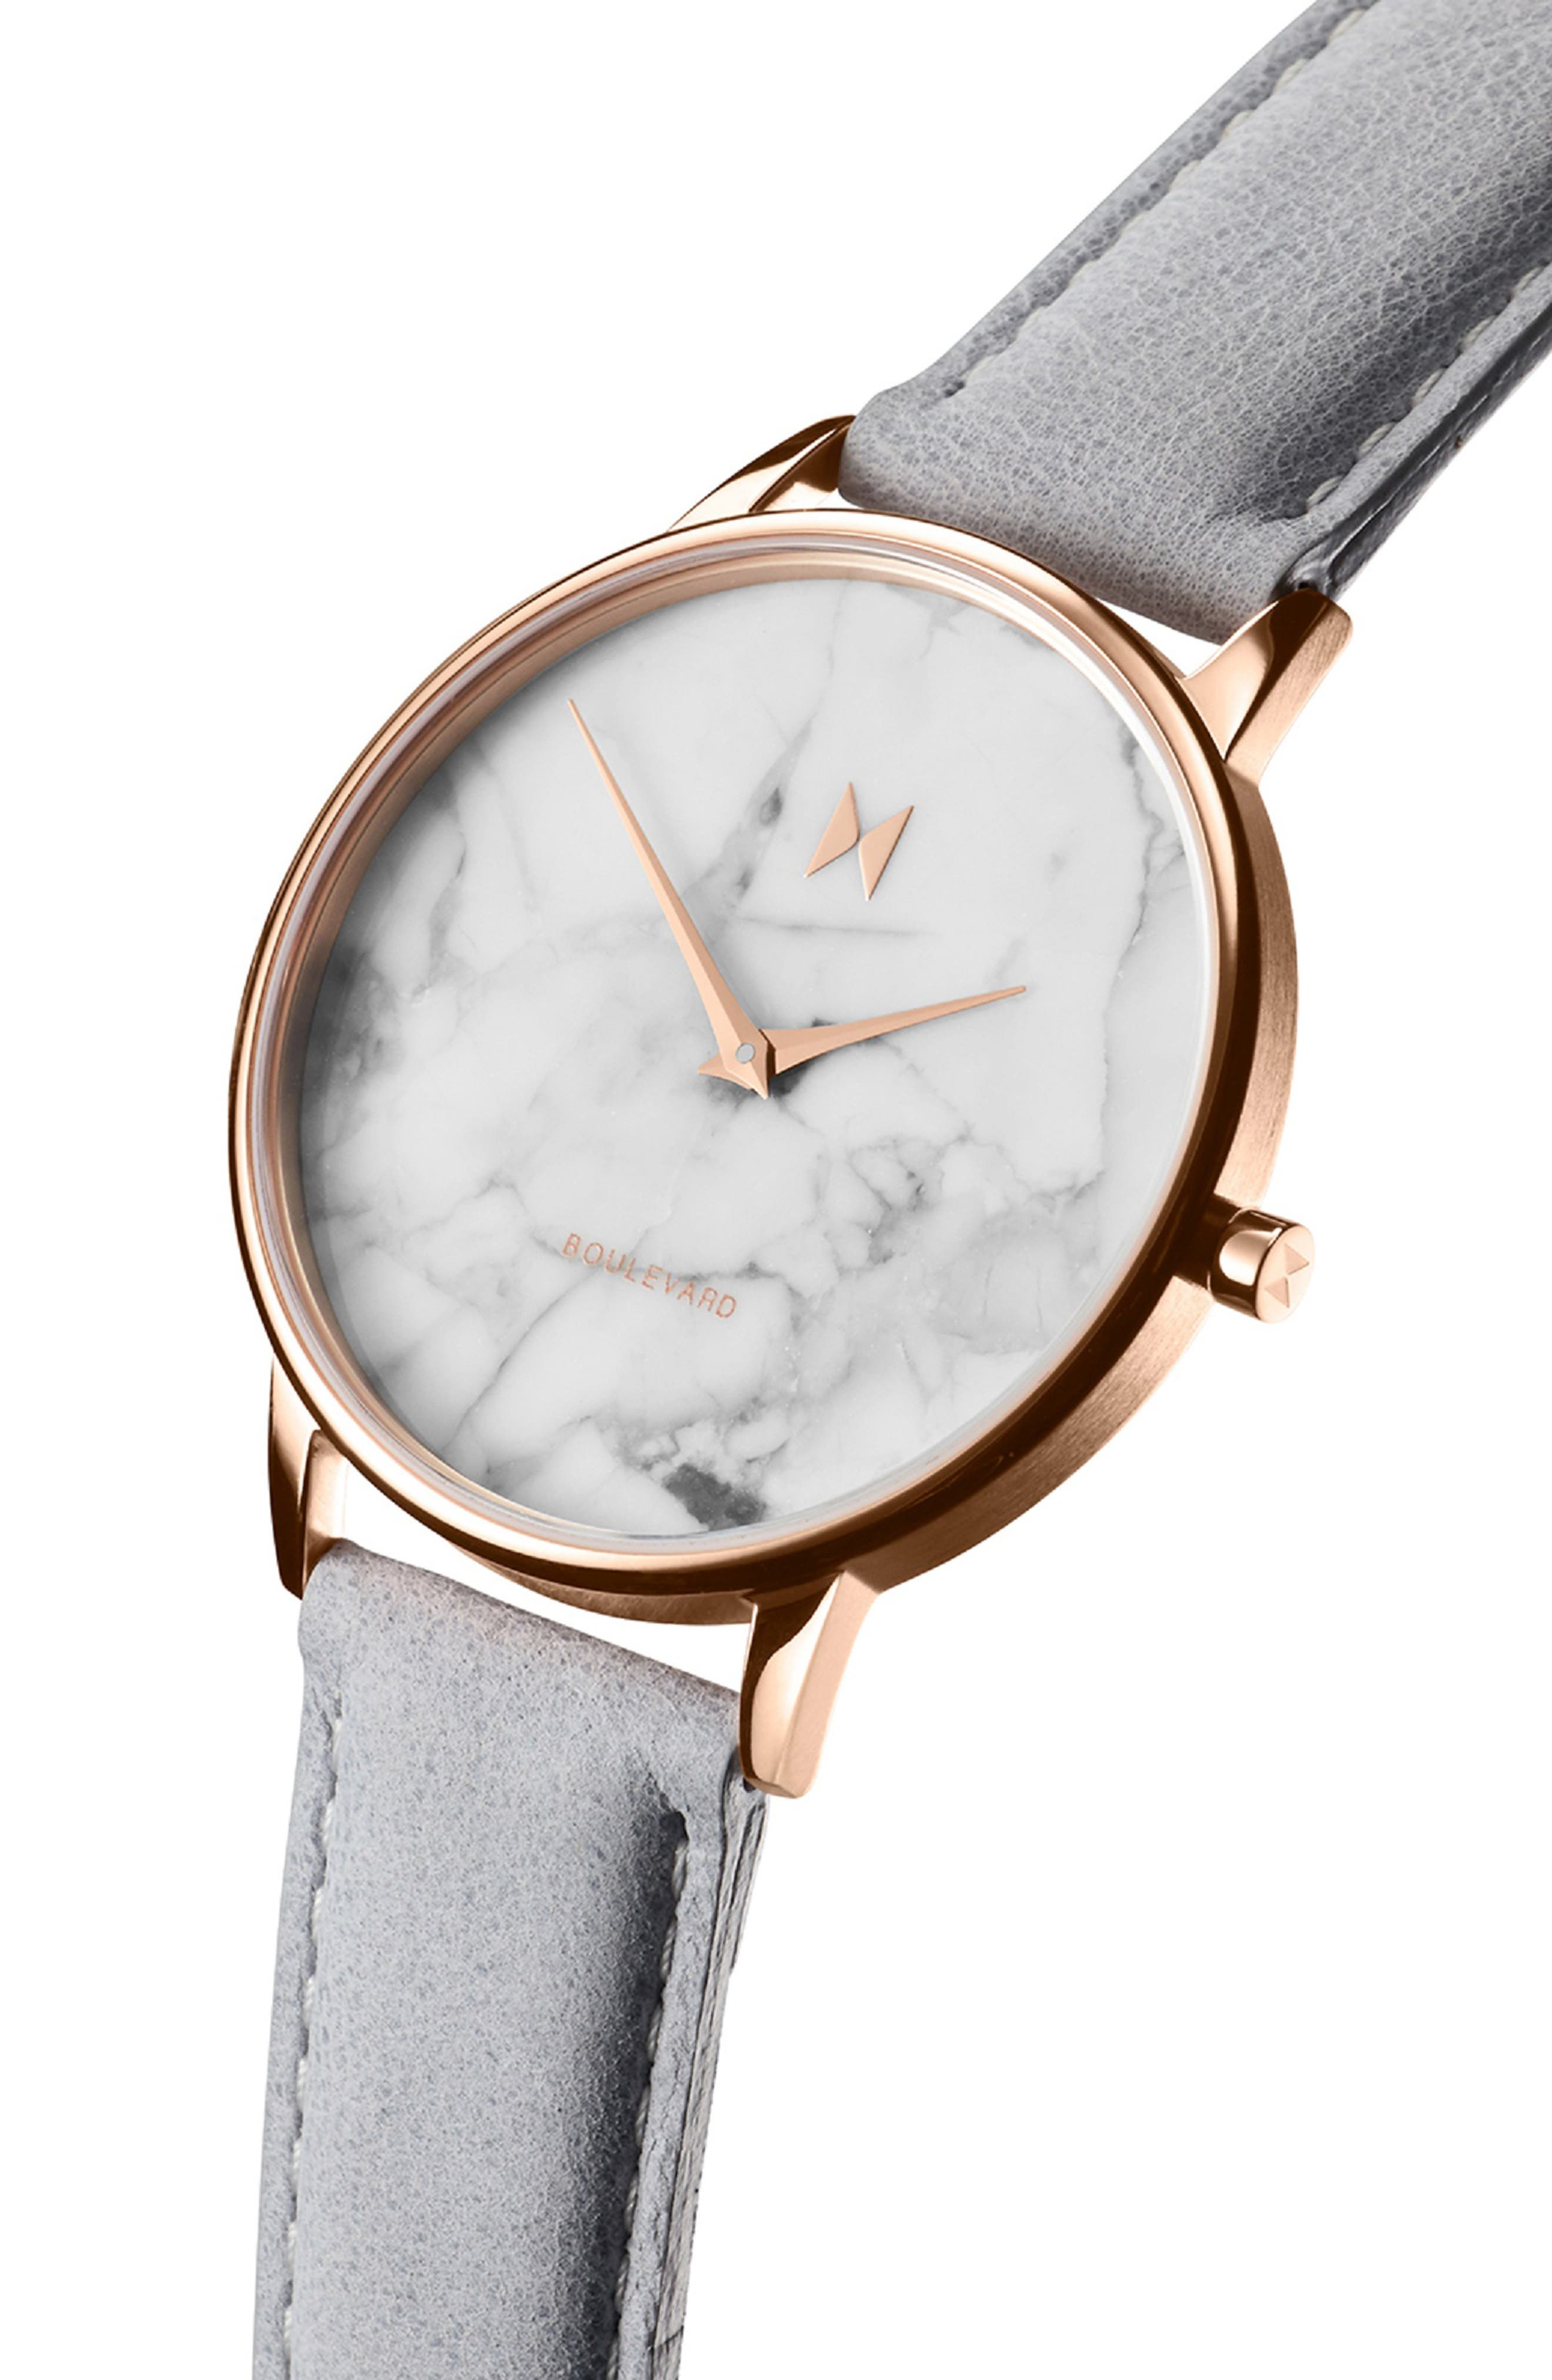 MVMT, Boulevard Leather Strap Watch, 38mm, Alternate thumbnail 4, color, GREY/ WHITE MARBLE/ ROSE GOLD